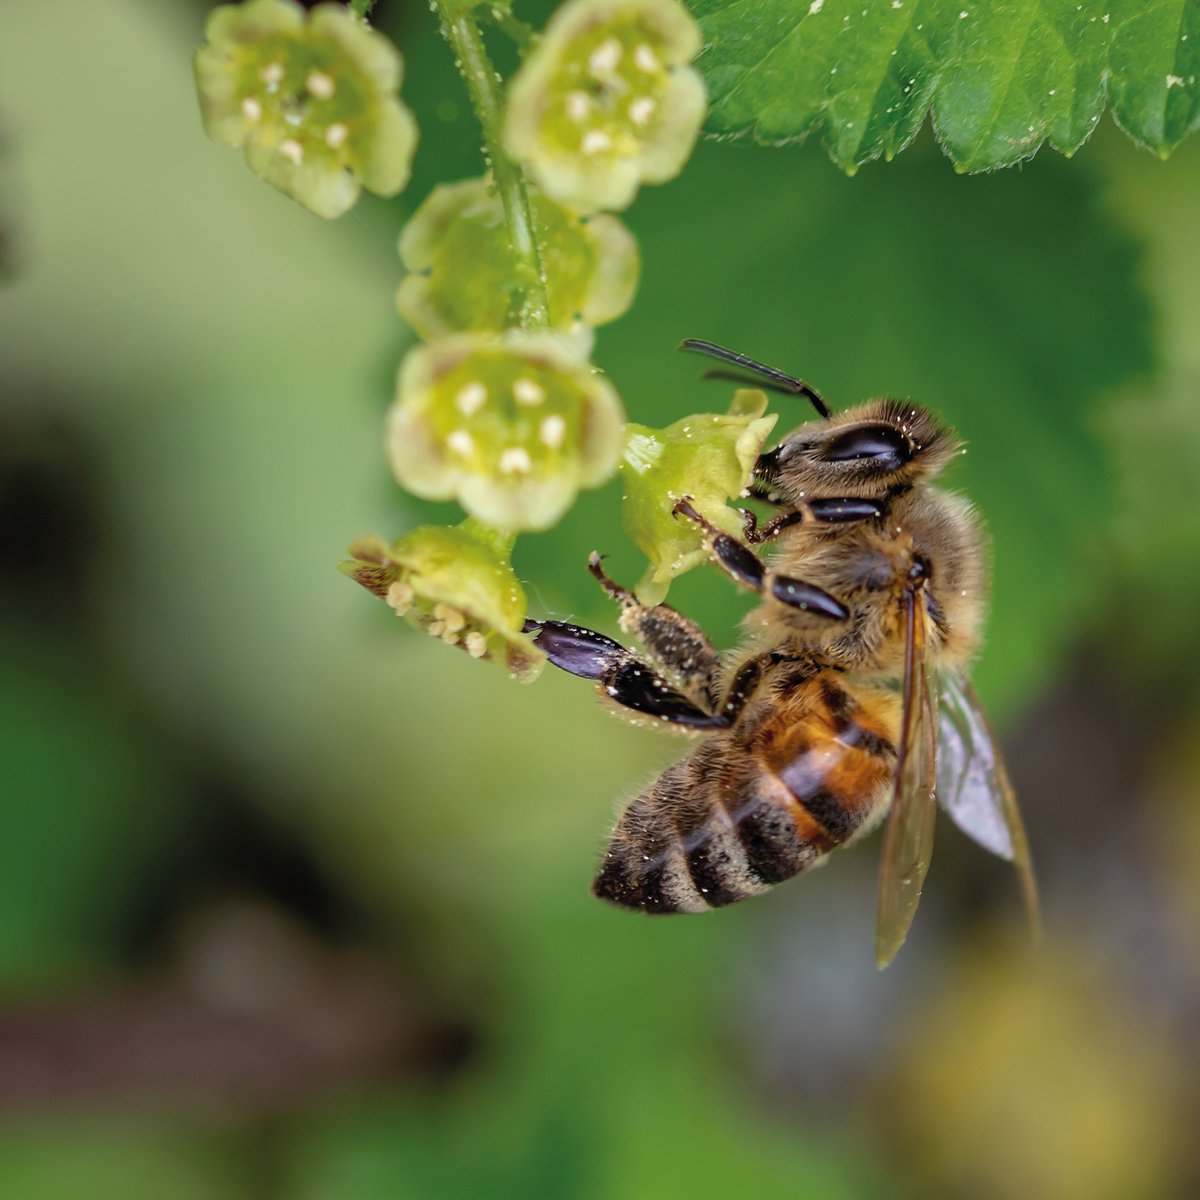 Did you know, for honey to be classified as organic, by @OrganicUK and @SoilAssociation, the hives must be placed in an area, surrounded by 100% organic plants, that stretches at least twelve kilometres in any direction.⁠ #WakeUpToOrganic <br>http://pic.twitter.com/CjfAxv0eyT